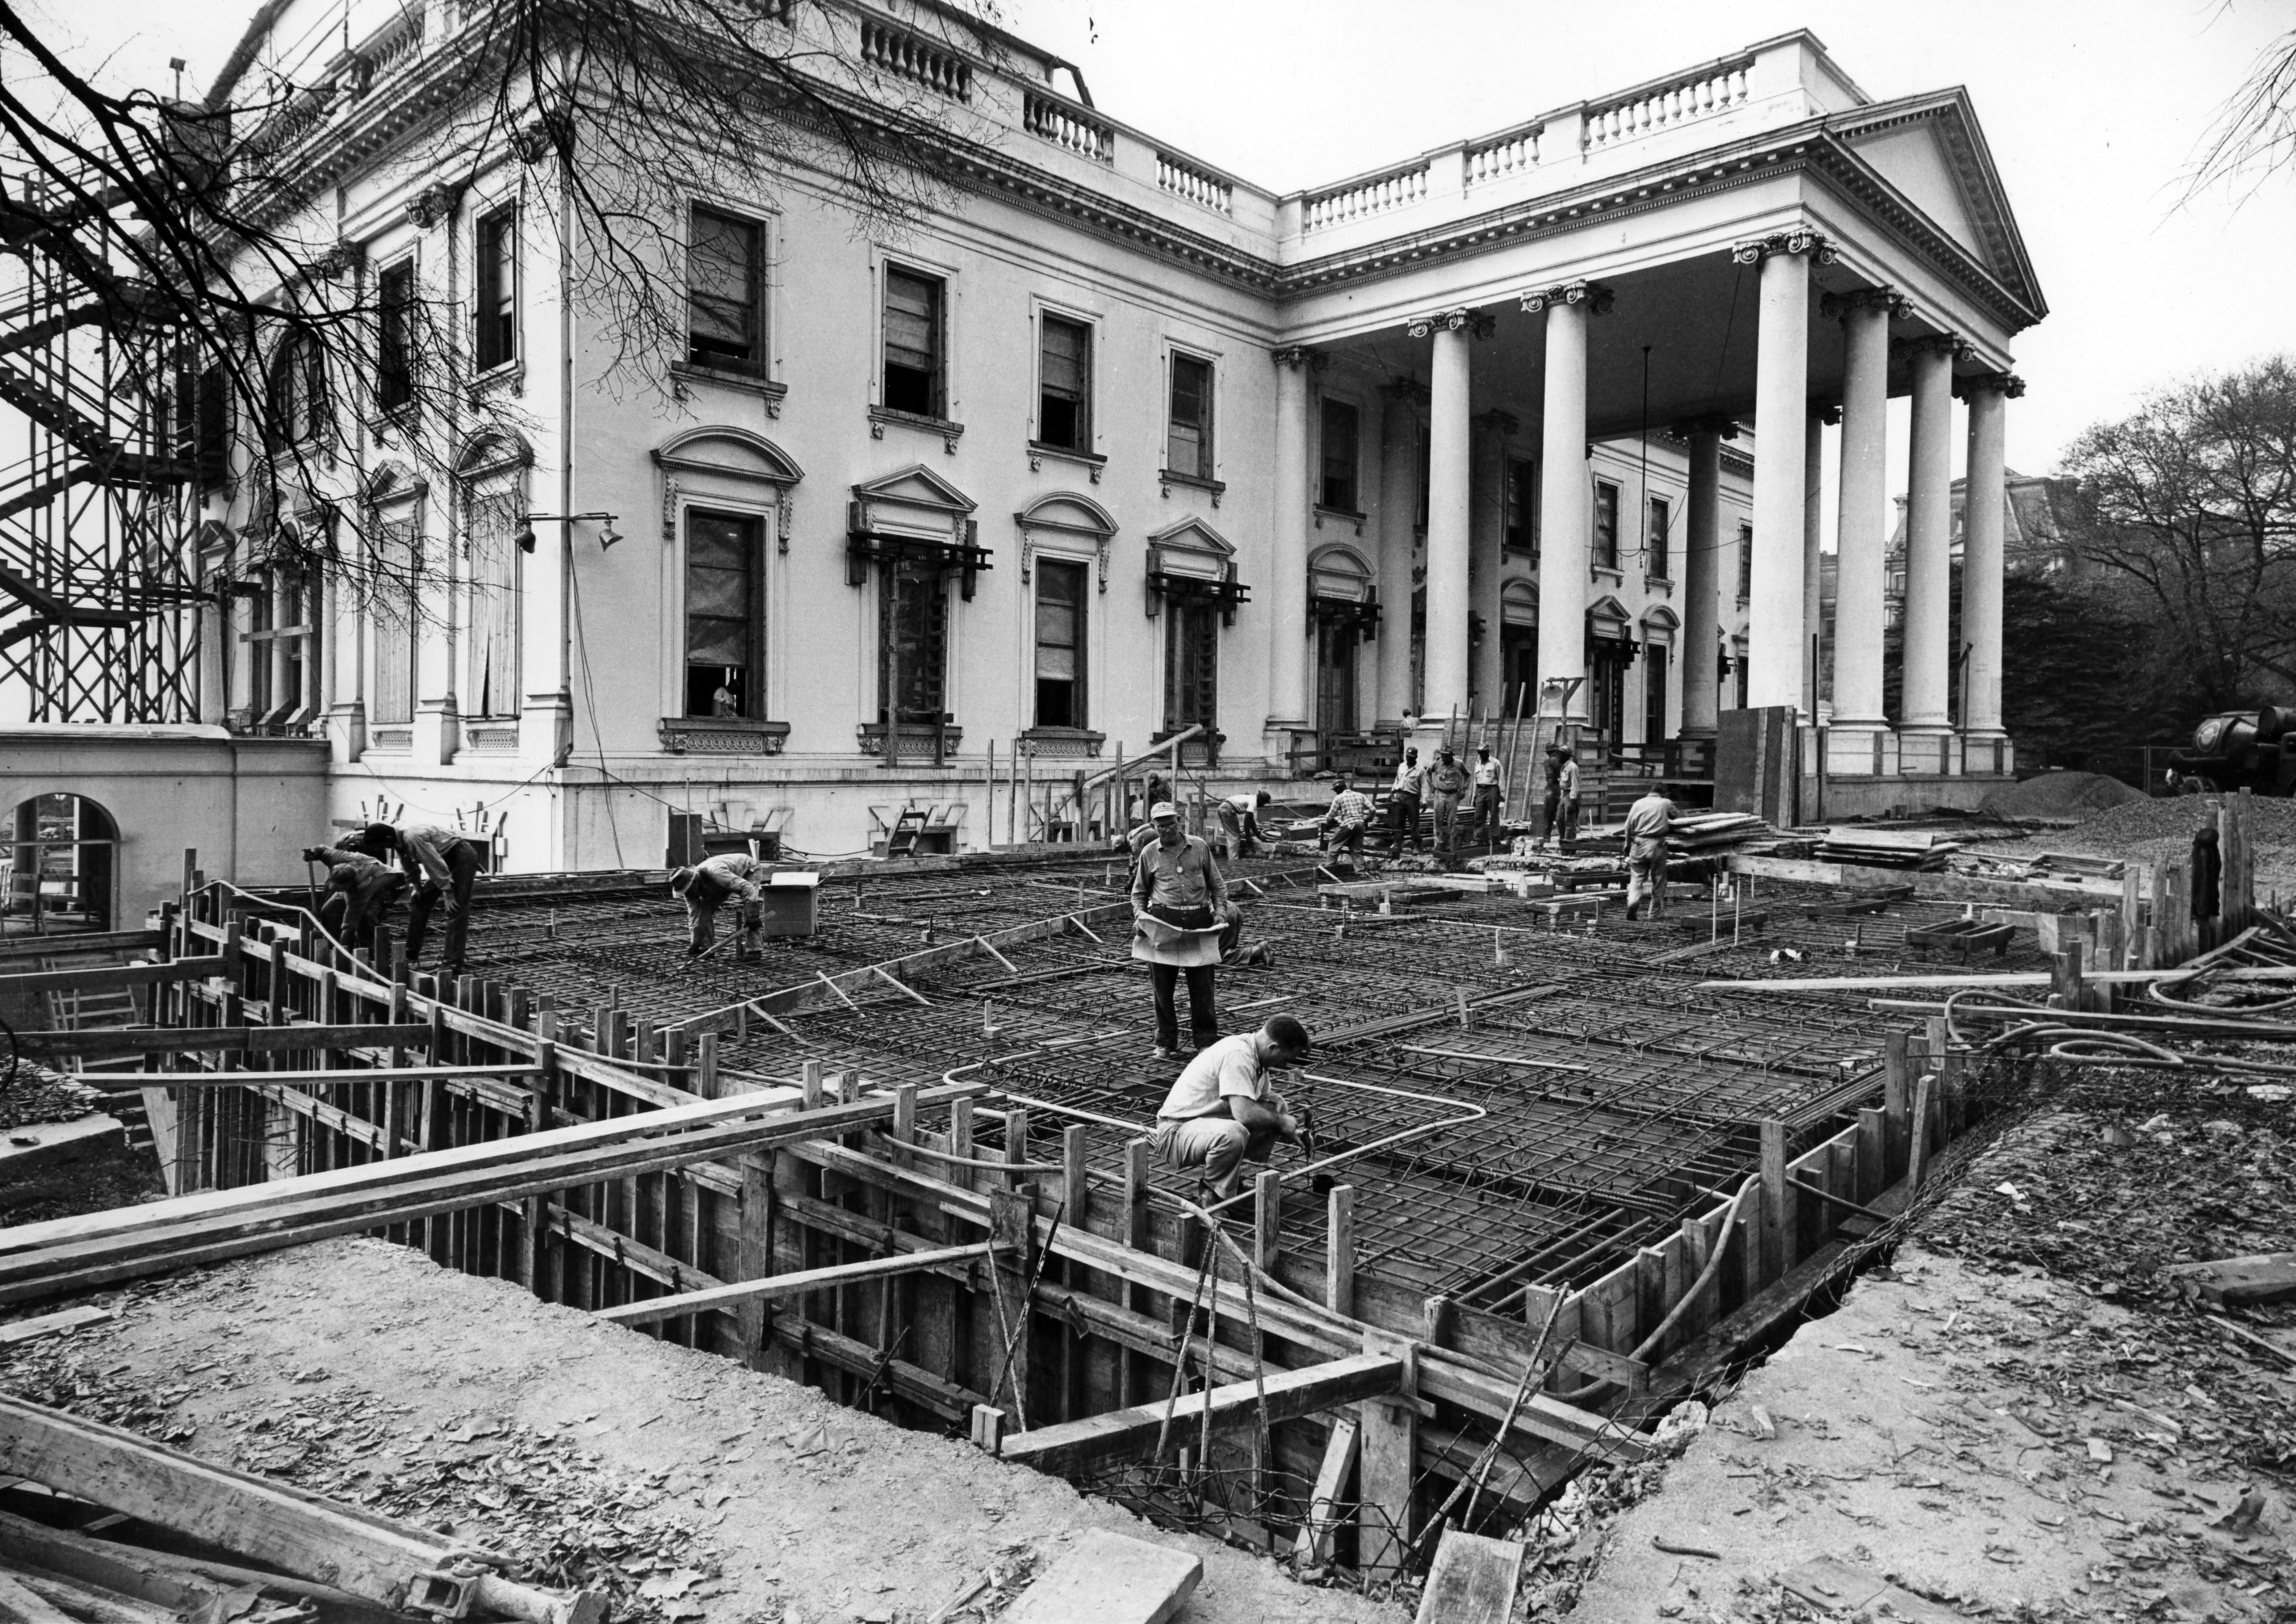 View of the northeast corner of the White House during renovation on November 6, 1950. Workmen are installing reinforced steel for laying of the concrete roofs of the Fan Room and other underground rooms in this area. Photo from he holdings of the National Archives and Records Administration, cataloged under the National Archives Identifier (NAID) 6982100.